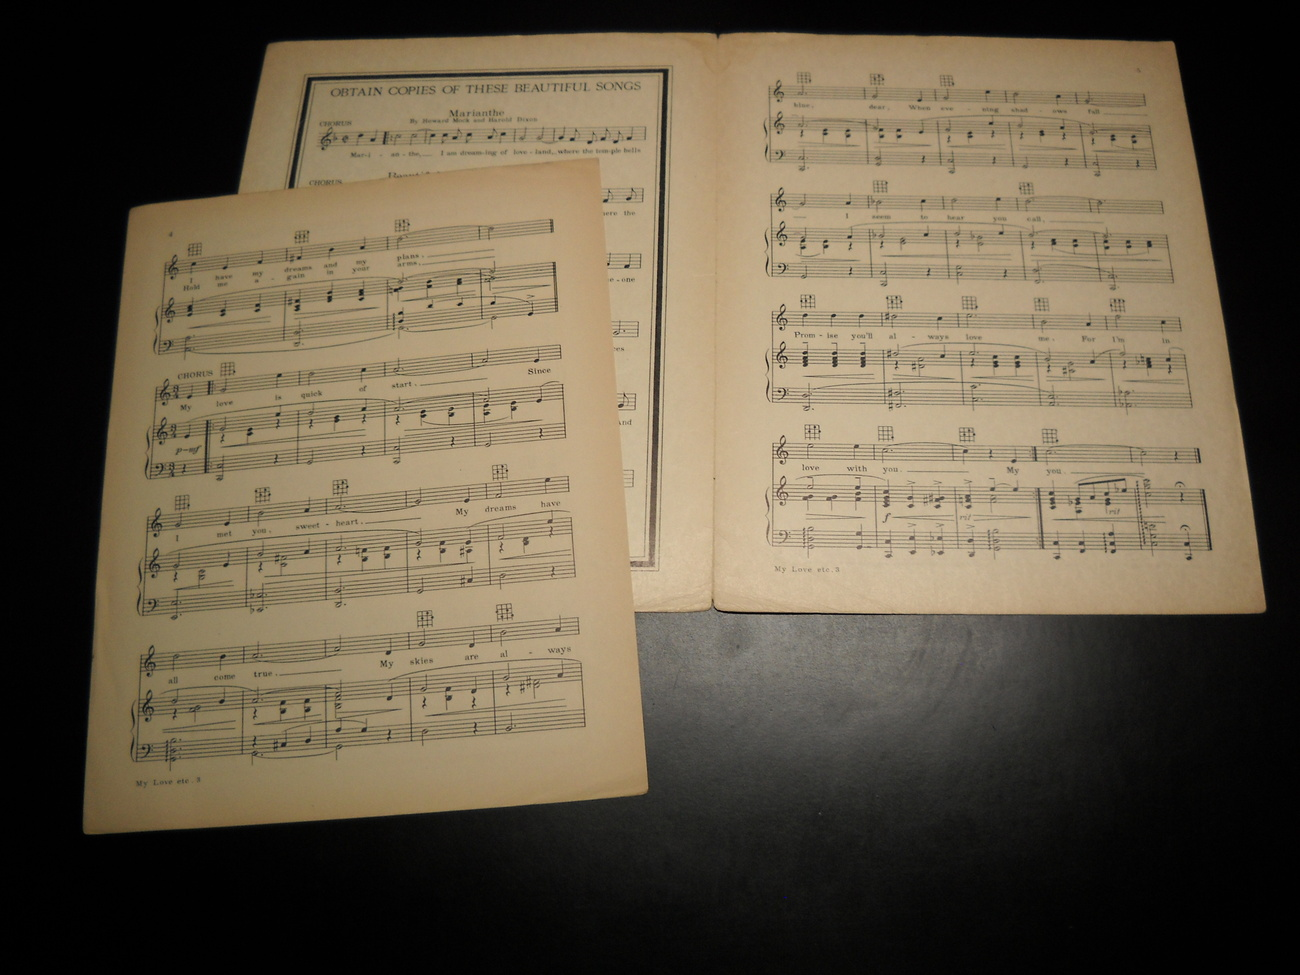 Sheet_music_my_love_is_quick_of_start_john_p_whitman_1931_harold_dixon_06